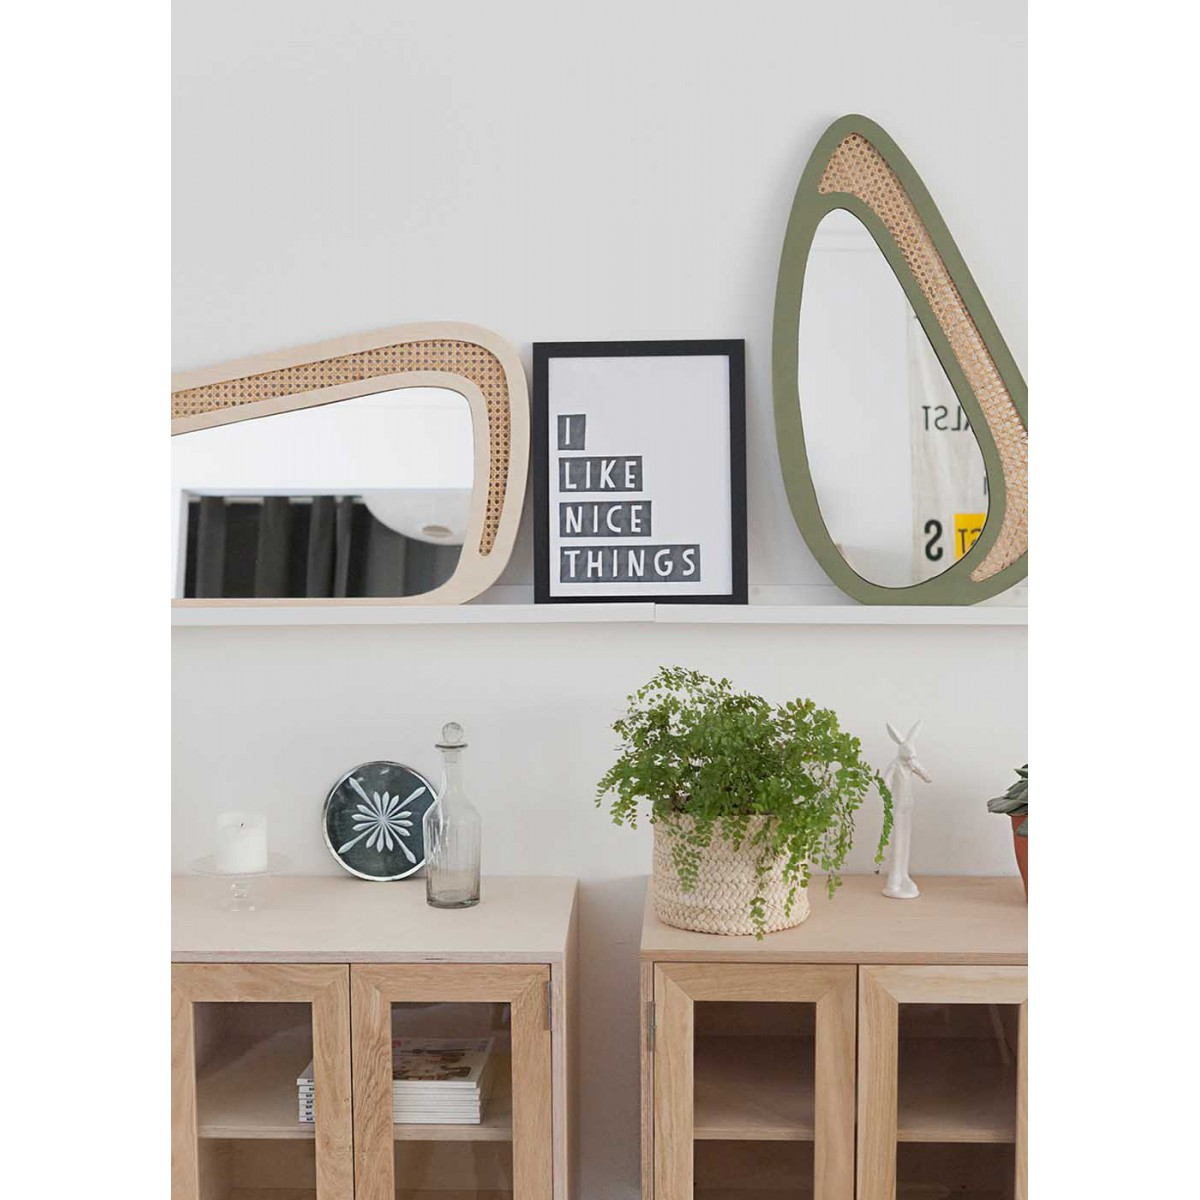 miroir design scandinave en bois et rotin gustave sign blomkal. Black Bedroom Furniture Sets. Home Design Ideas